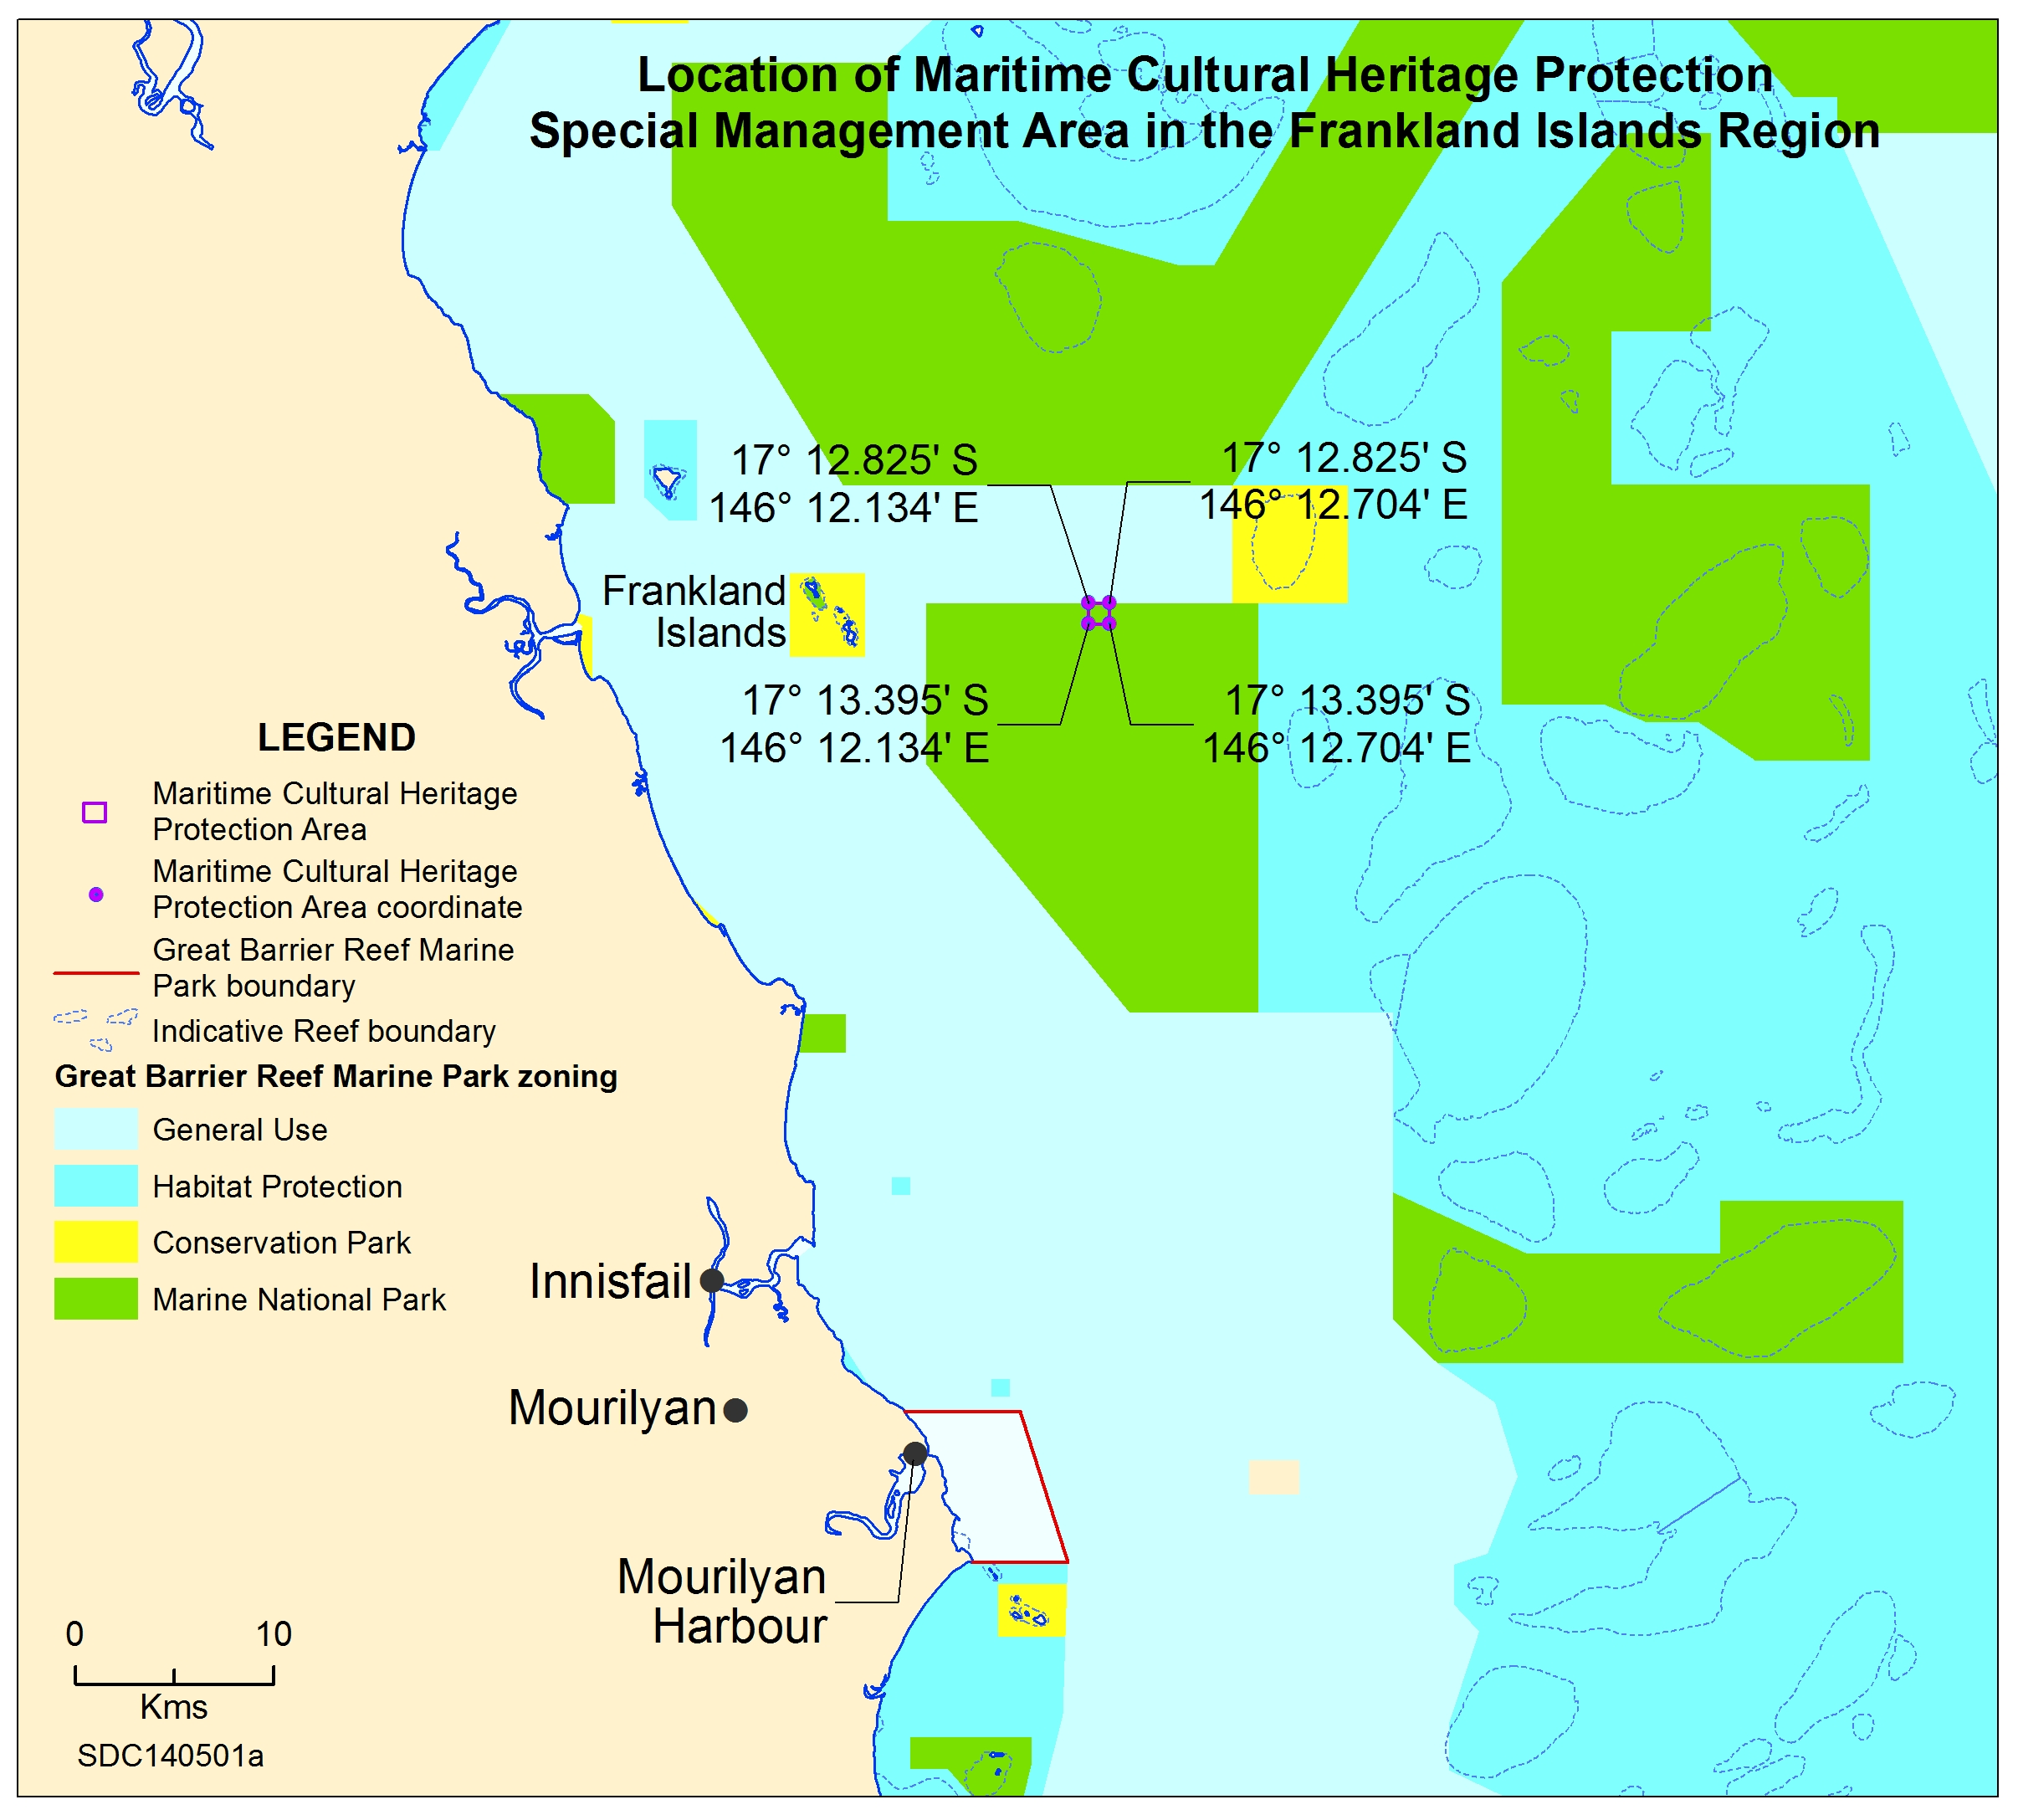 Map of Frankland Islands Catalina Special Management Area